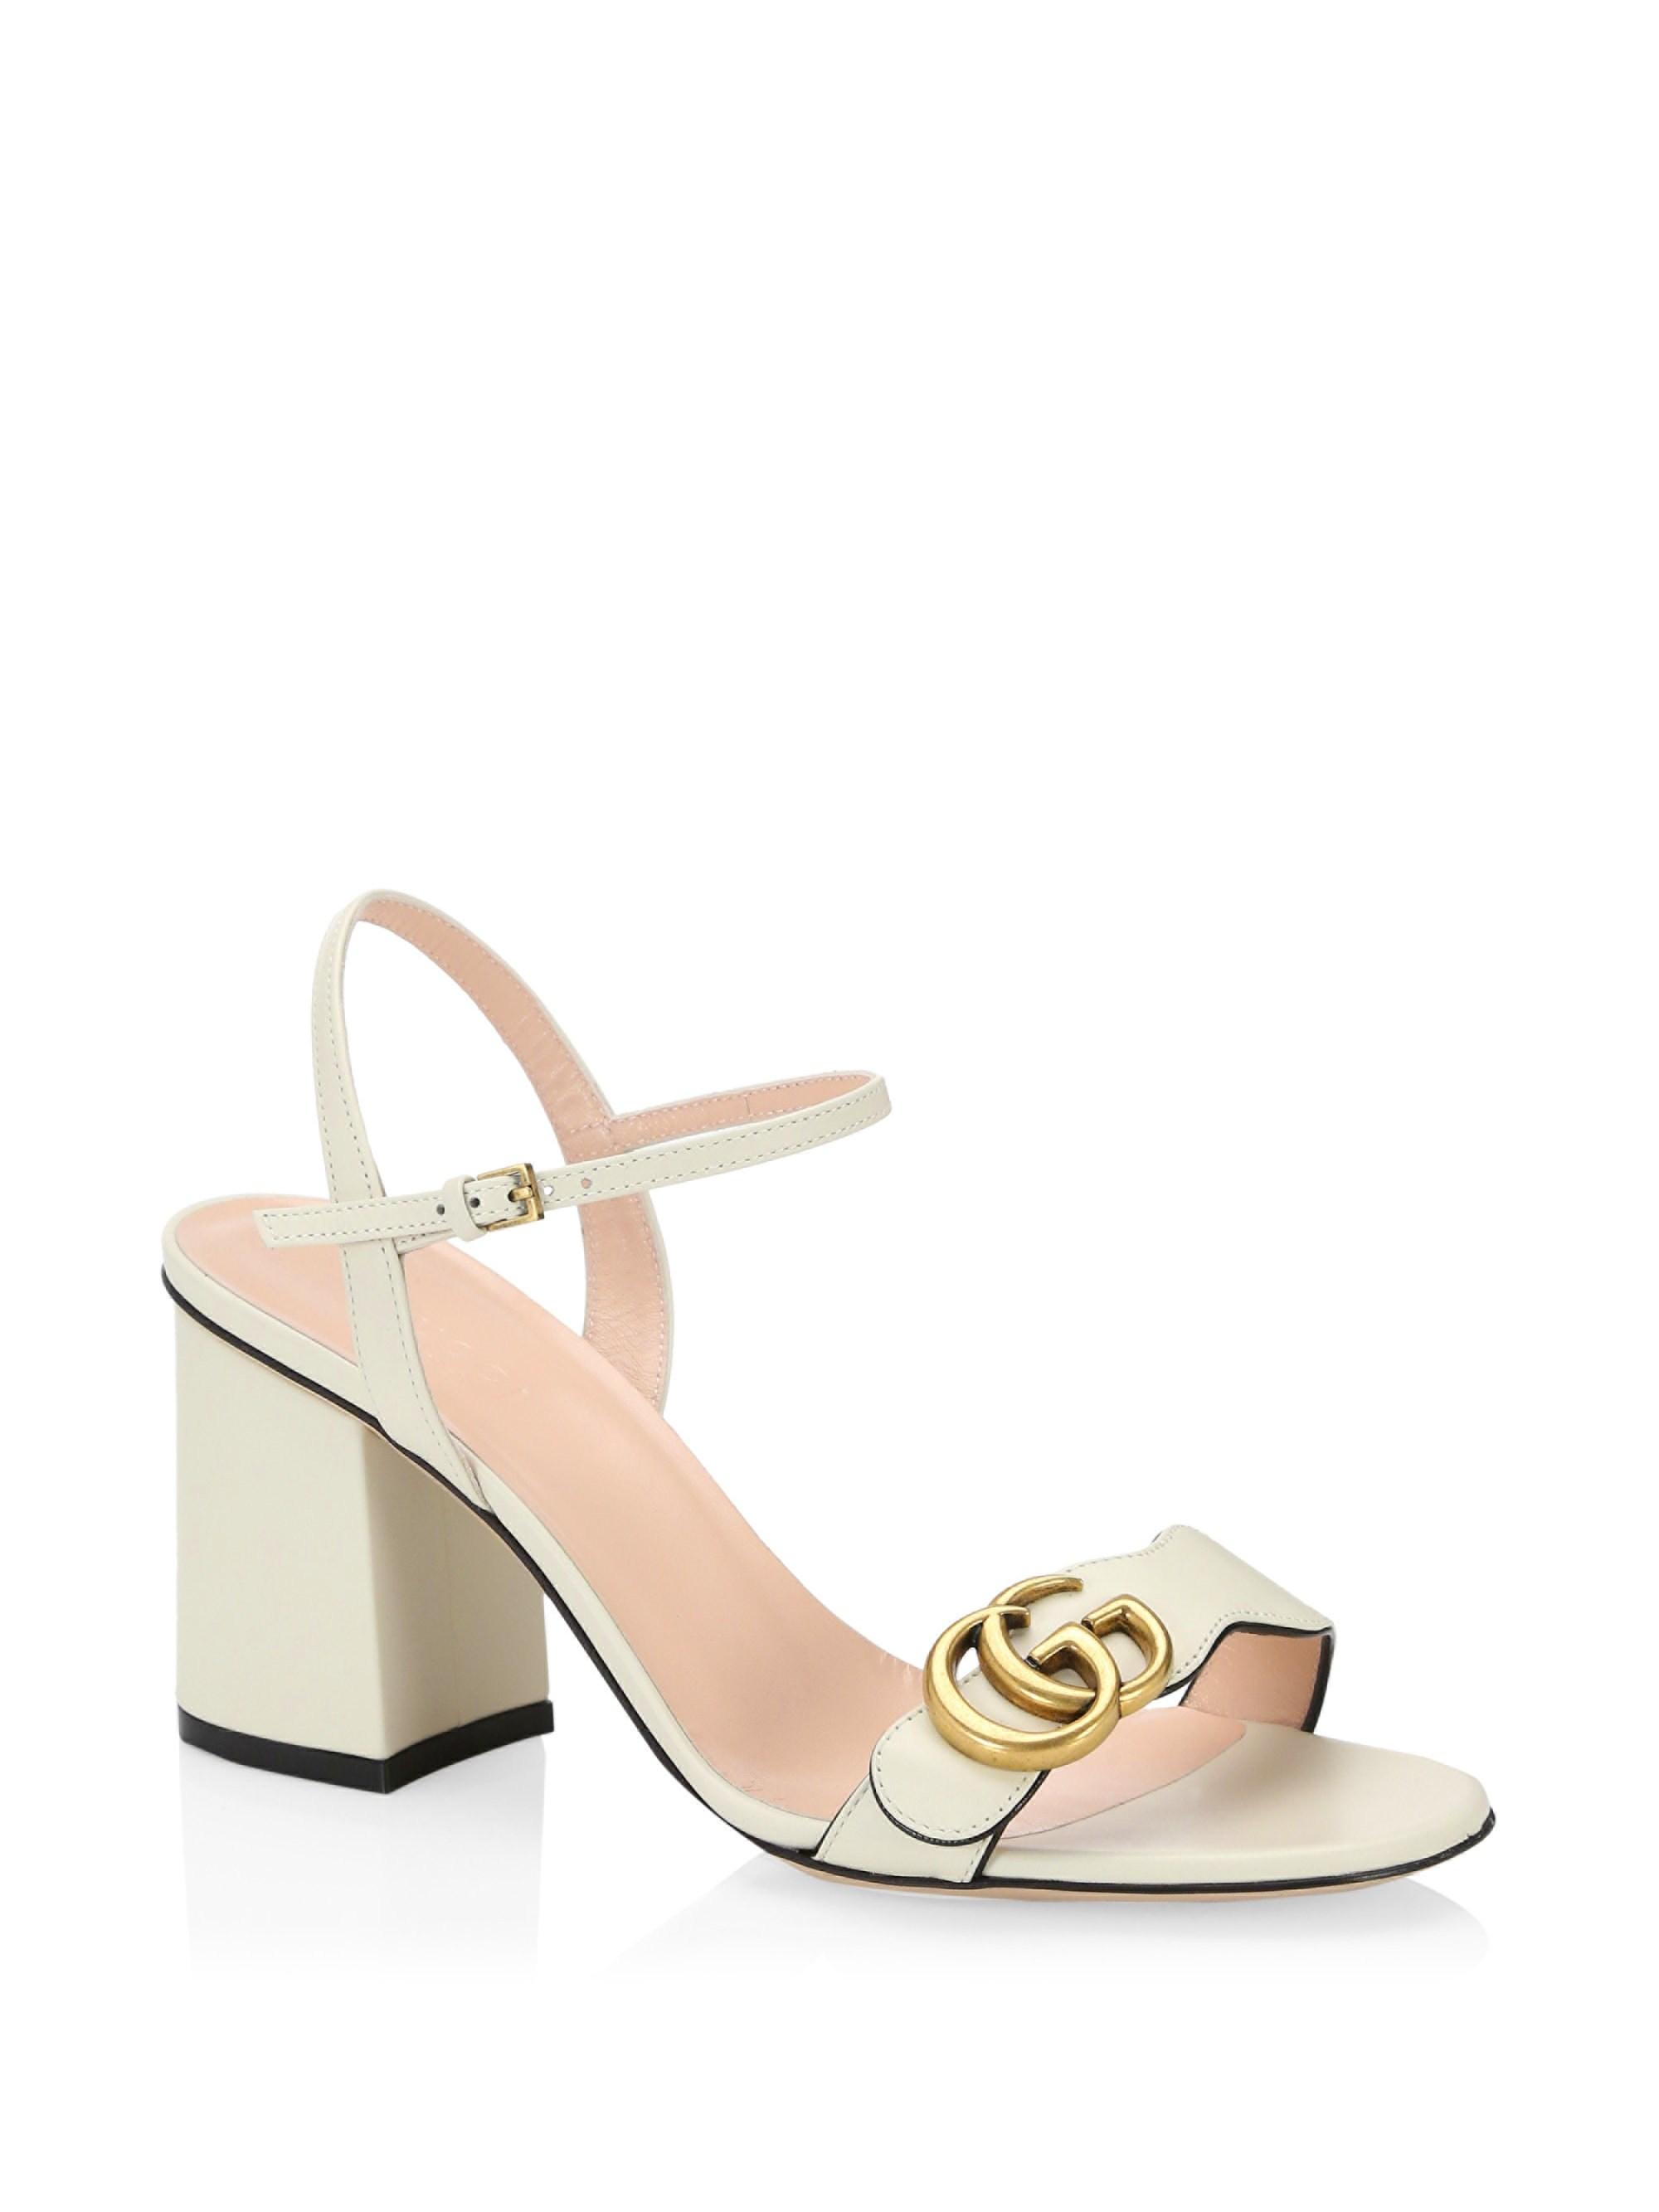 46be2c95844 Lyst - Gucci Marmont GG Ankle-strap Sandals